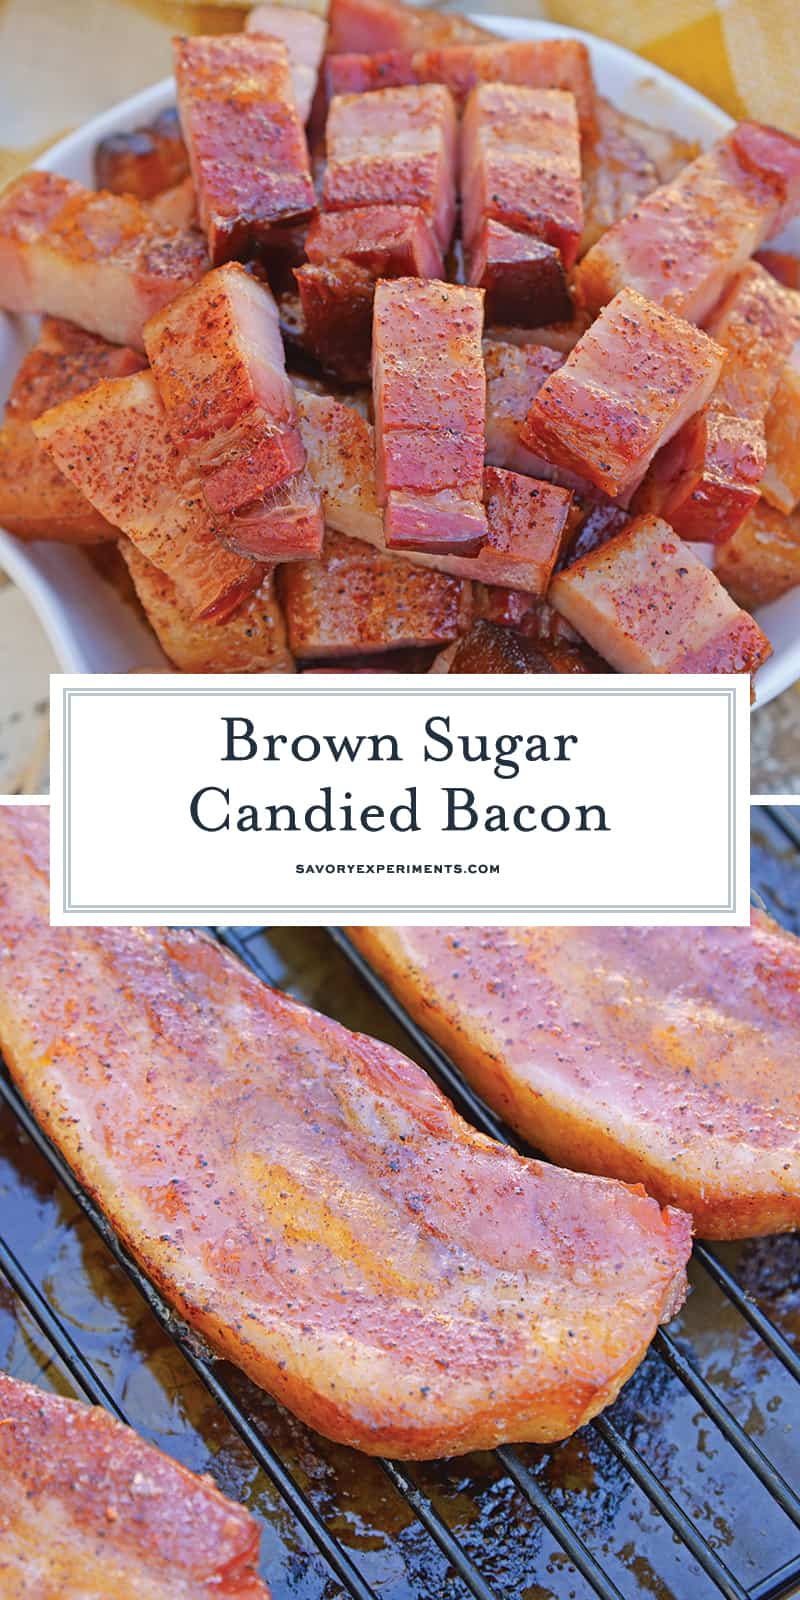 Candied bacon is the best sweet and salty snack with a kick. Serve as strips or bites, bacon is caramelized with brown sugar and and a touch of heat. #candiedbacon #pigcandy #brownsugarbacon www.savoryexperiments.com